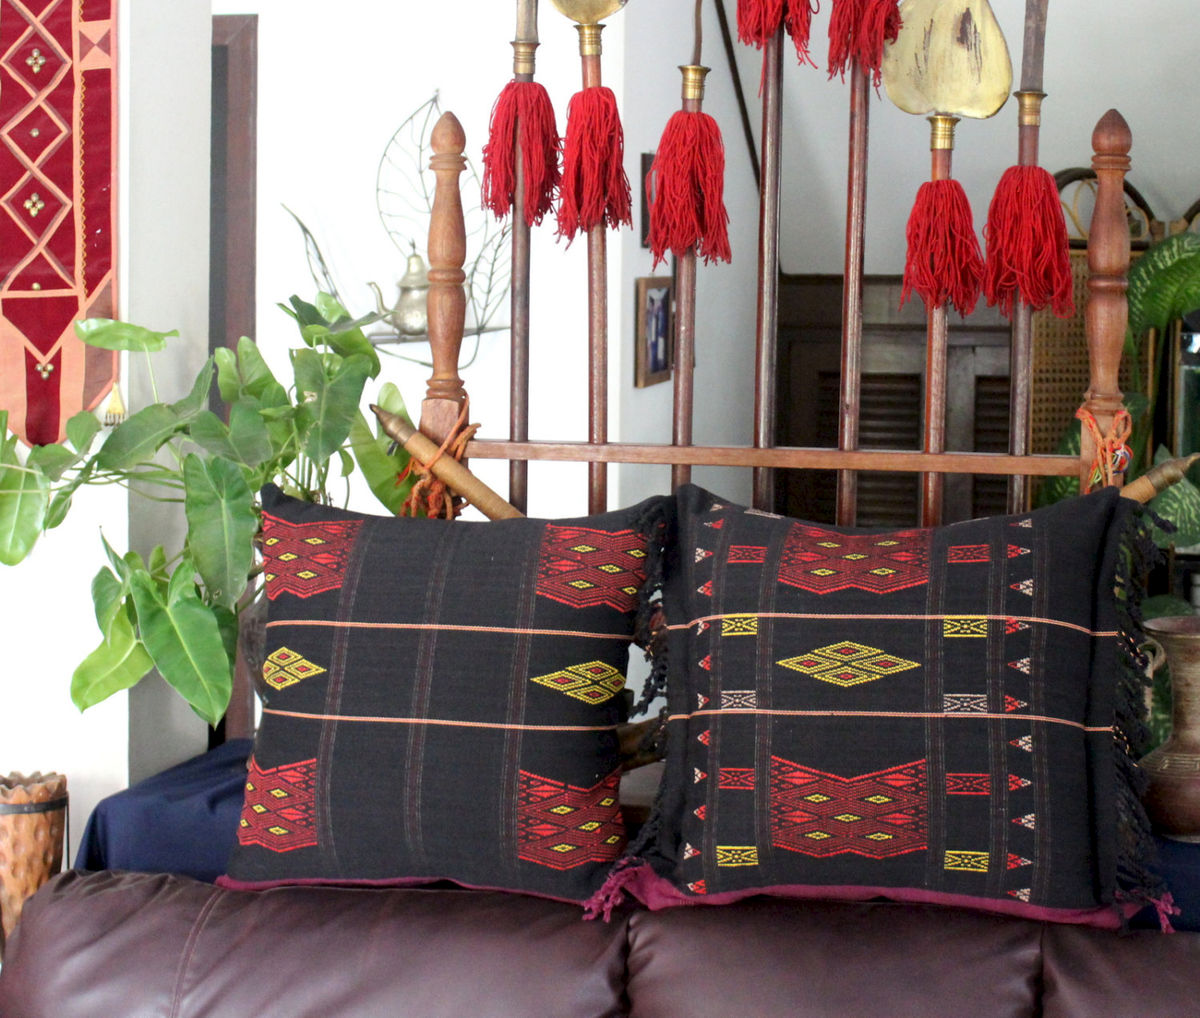 Naga Hand Woven Tribal Pillow's 16, 20 and 30 Inch - product images  of